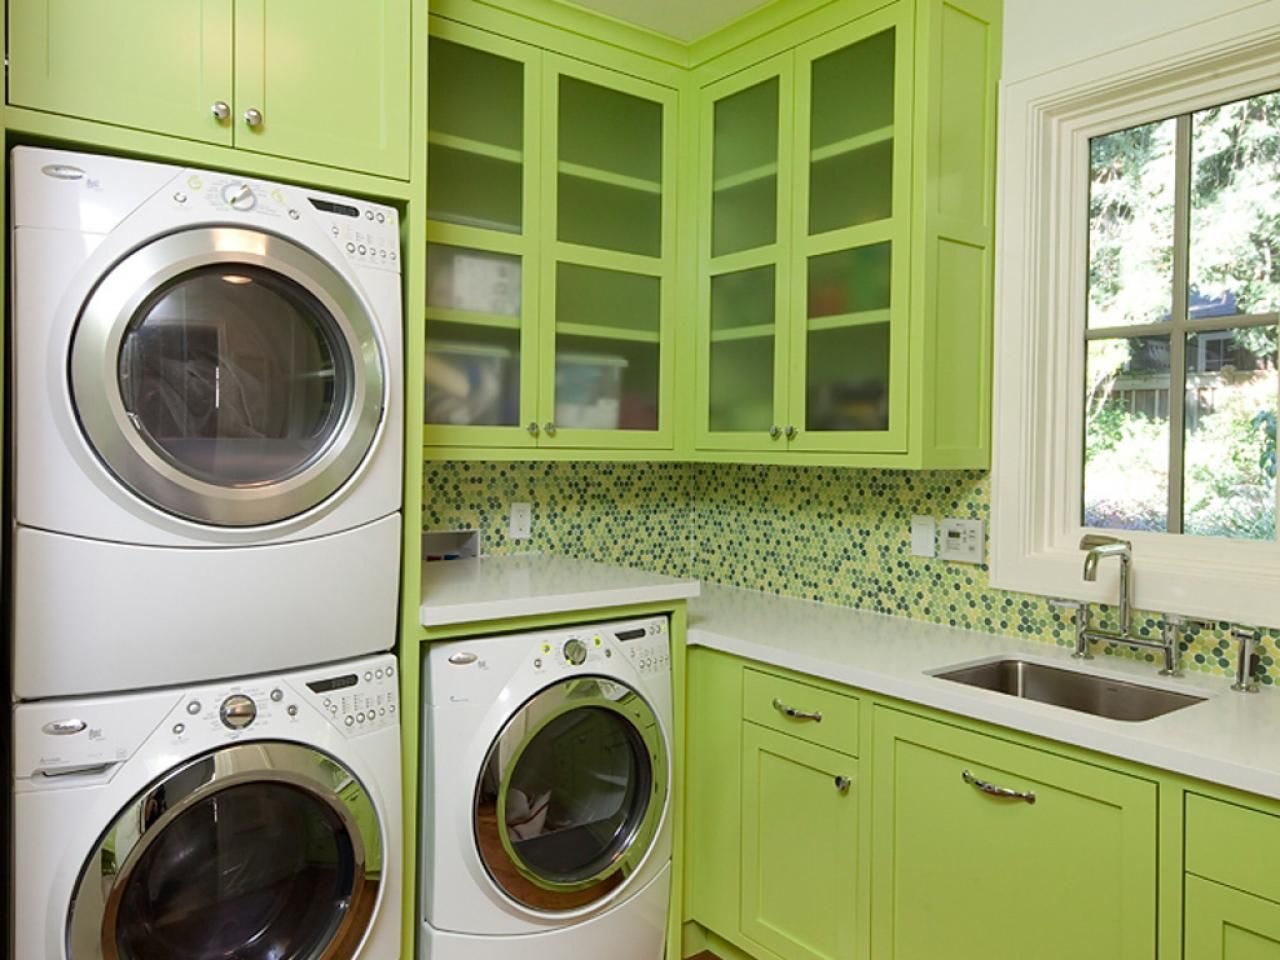 Pictures of Laundry Room Updates u0026 Organization